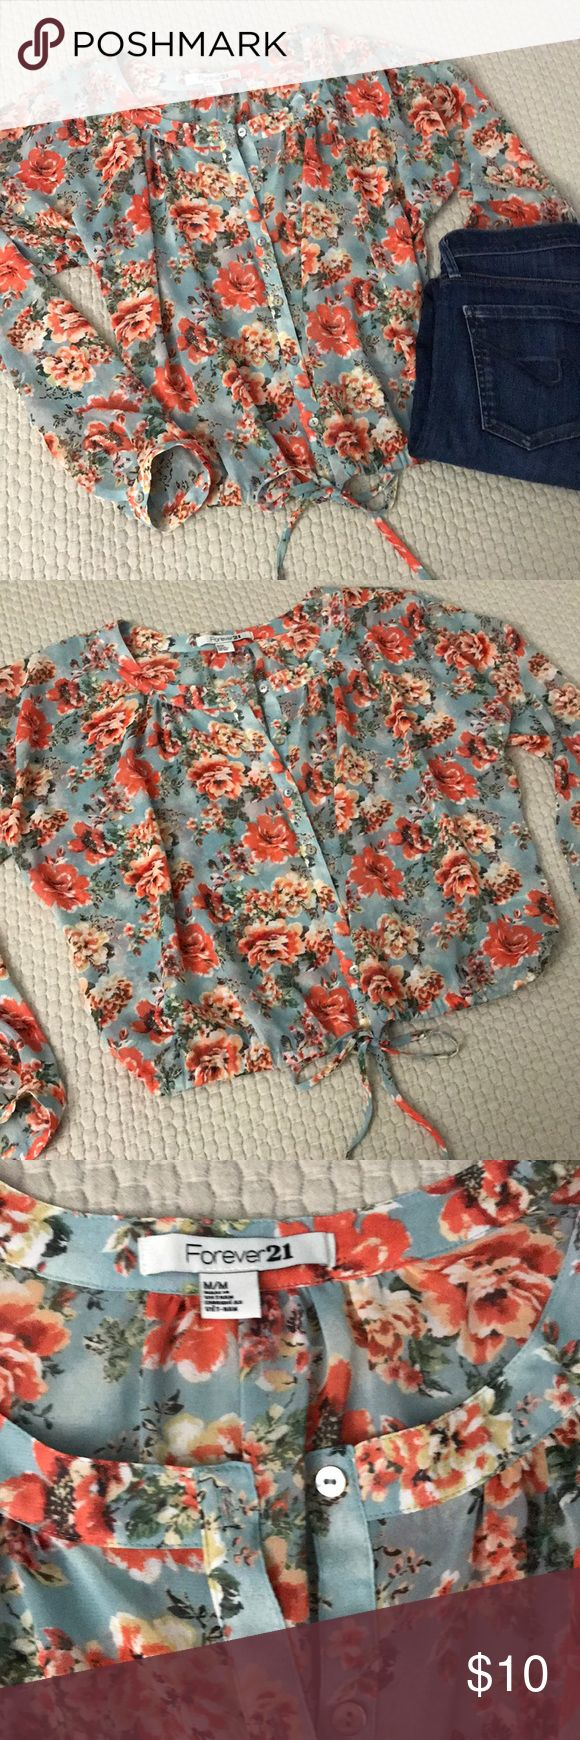 Forever 21 Floral Top Floral forever 21 boho tie waist button up blouse. Blue with pink floral pattern. EUC. Loose, relaxed fit. Forever 21 Tops Blouses